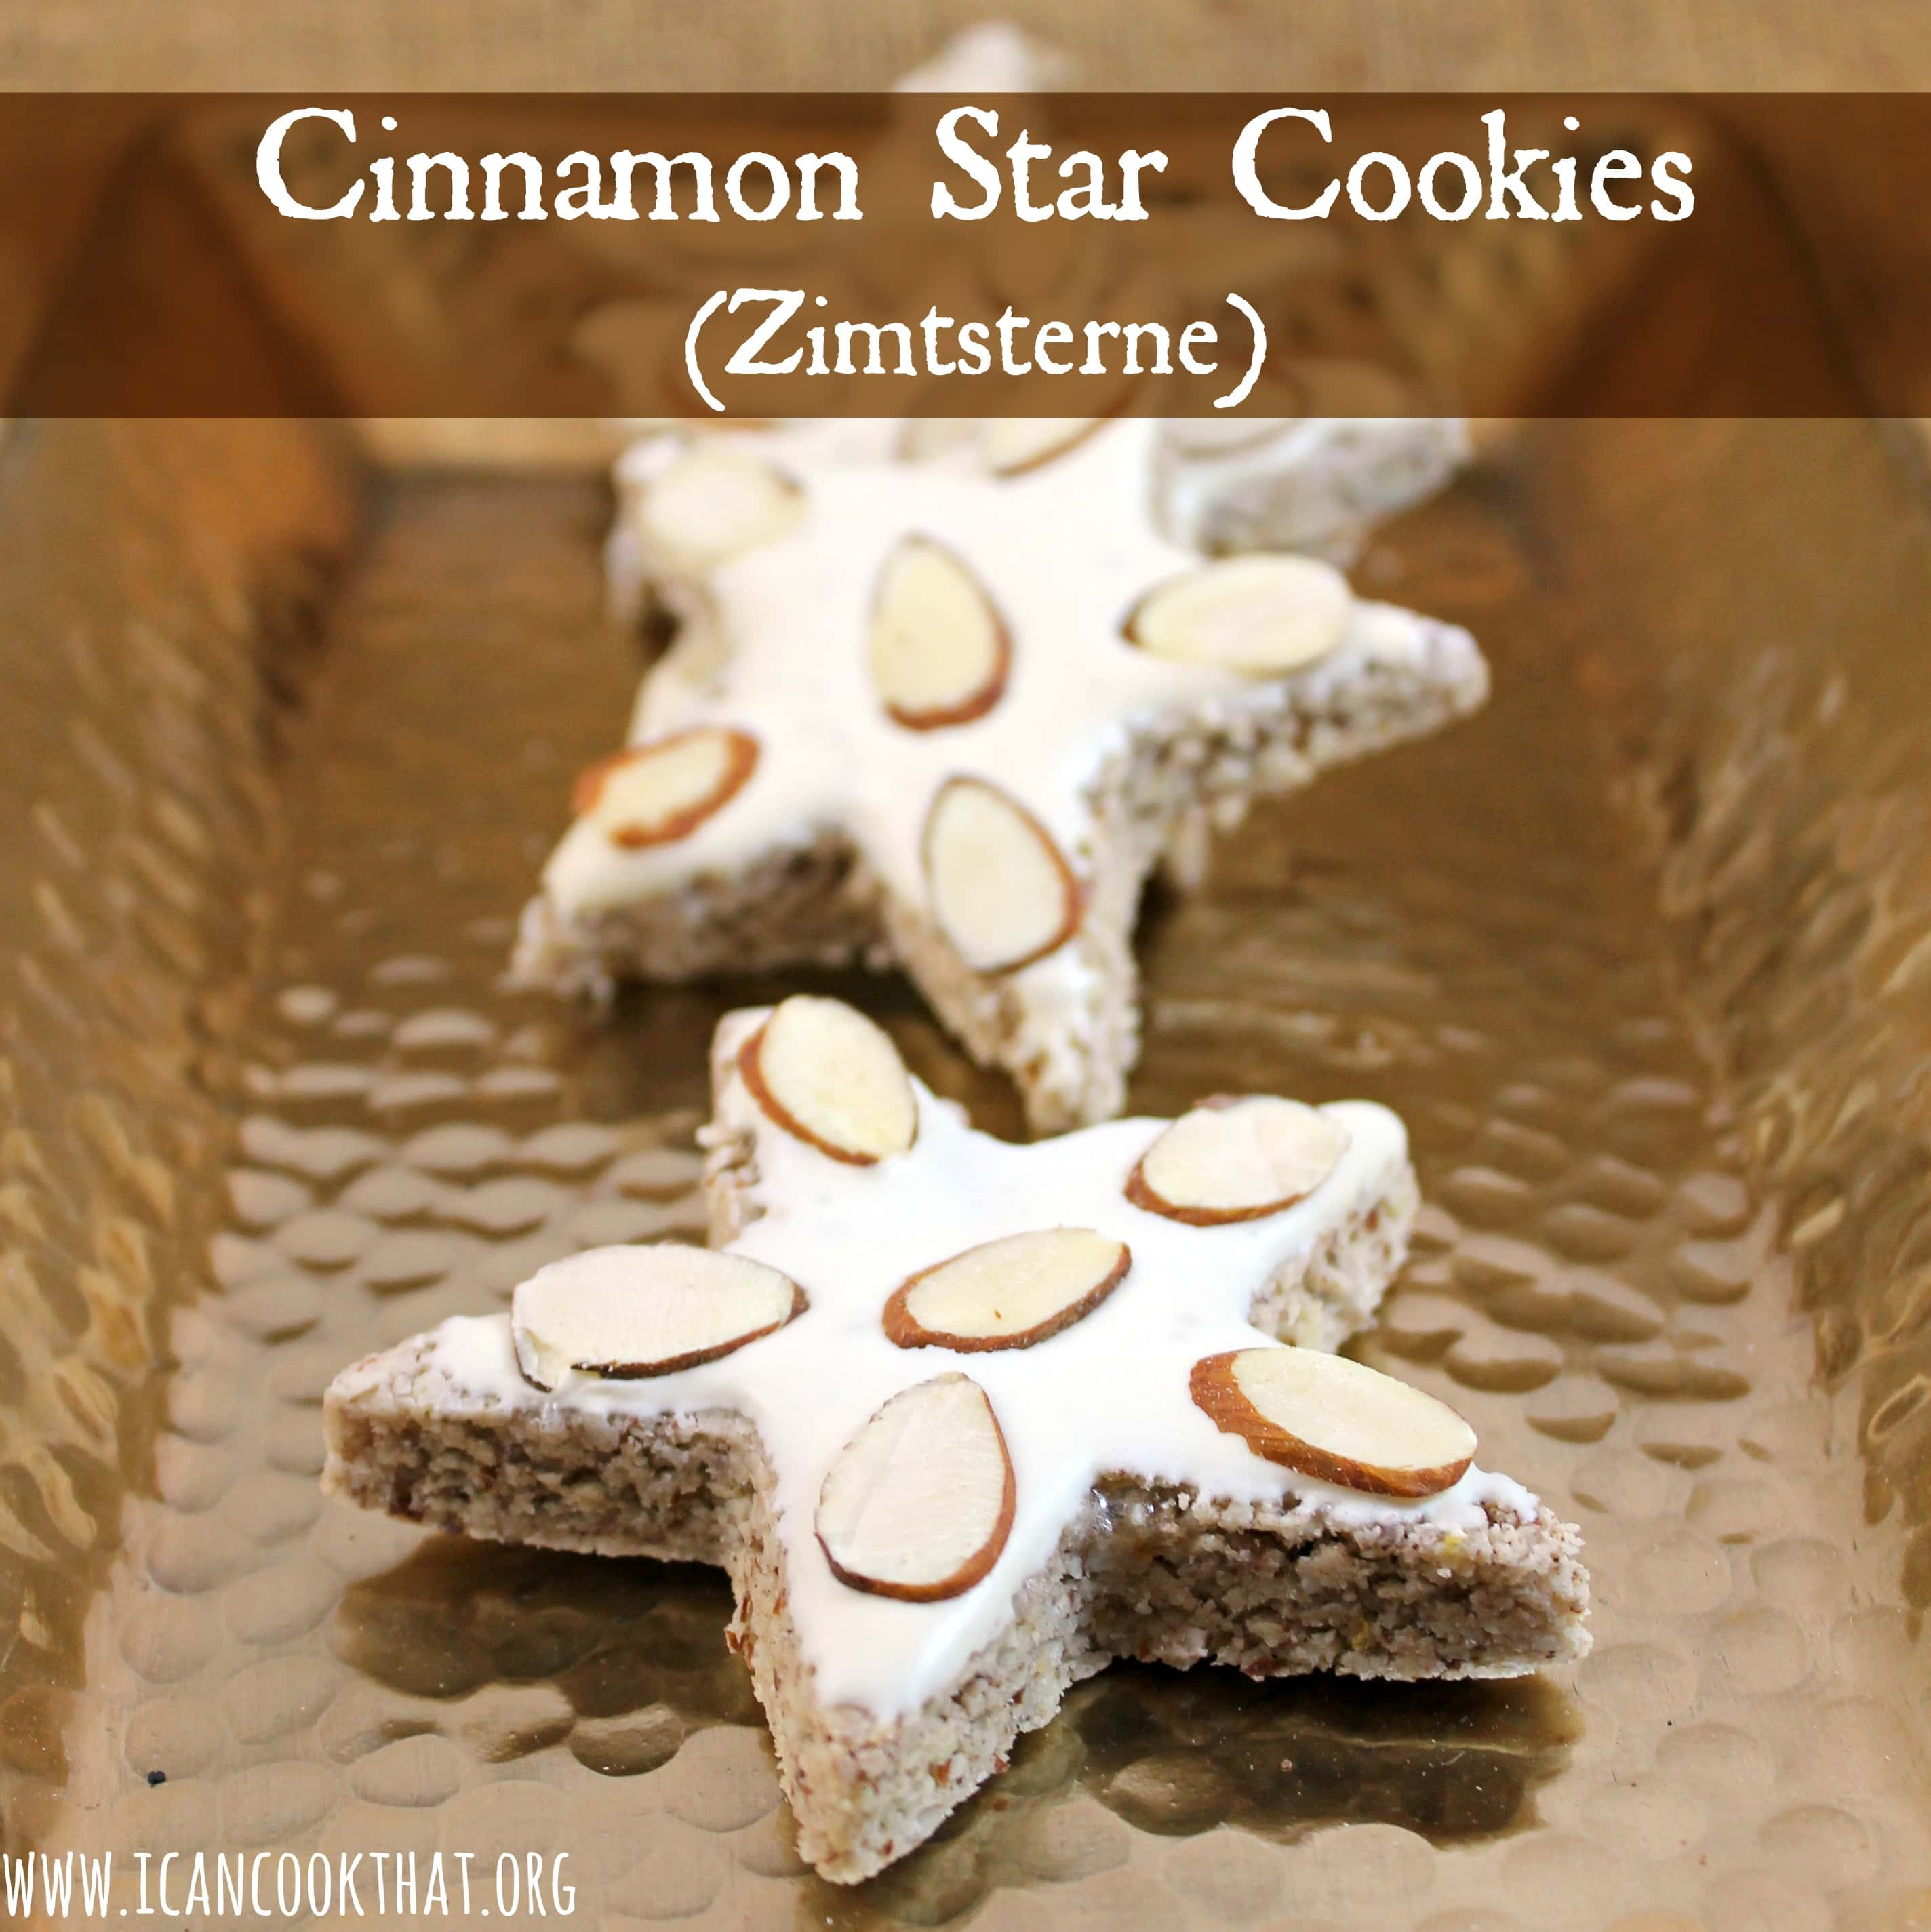 Gluten Free Cinnamon Star Cookies Zimtsterne Recipe I Can Cook That